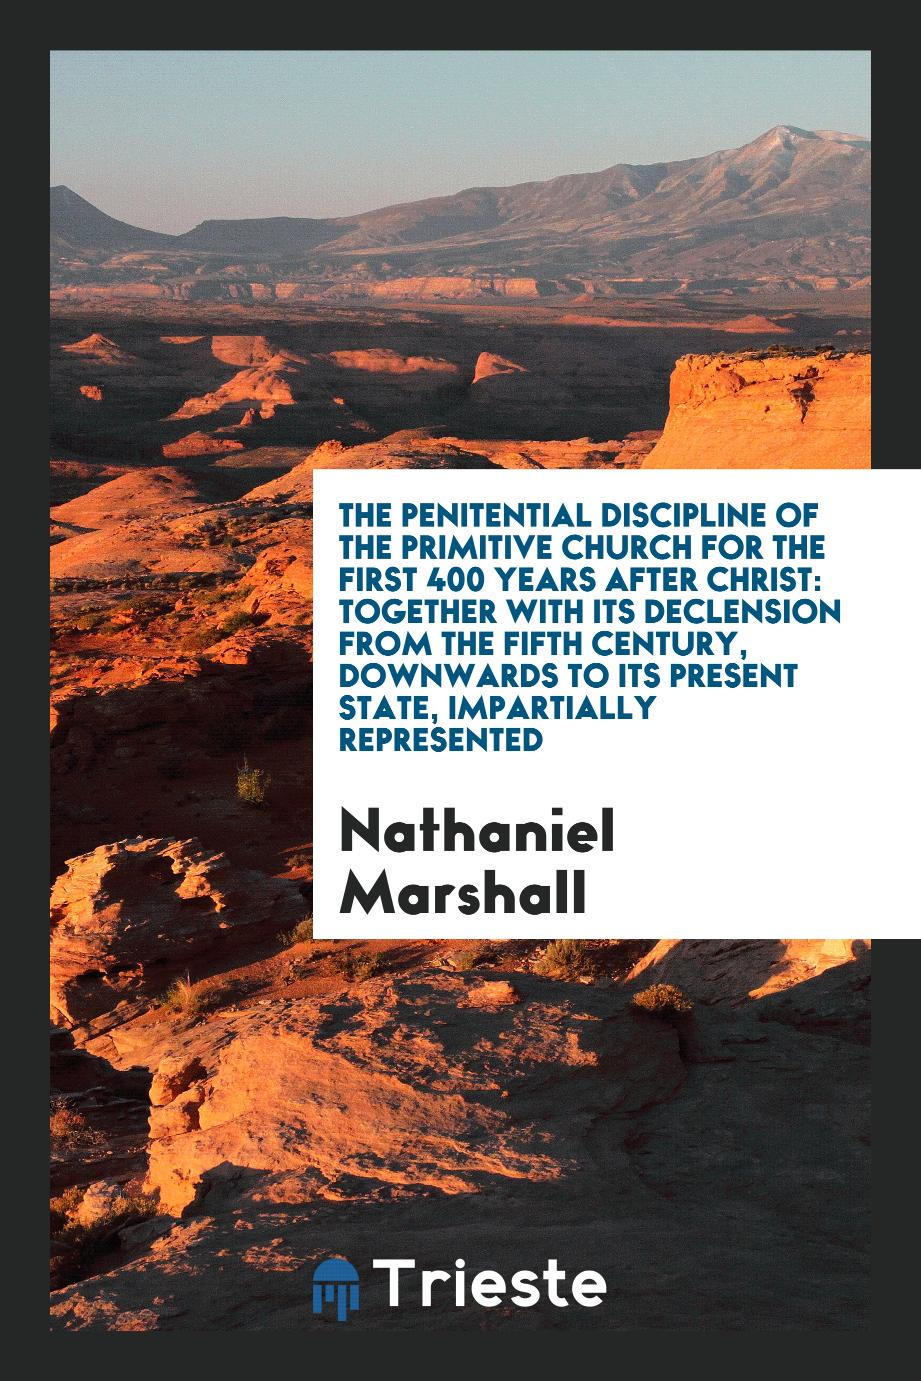 The penitential discipline of the primitive church for the first 400 years after Christ: together with its declension from the fifth century, downwards to its present state, impartially represented